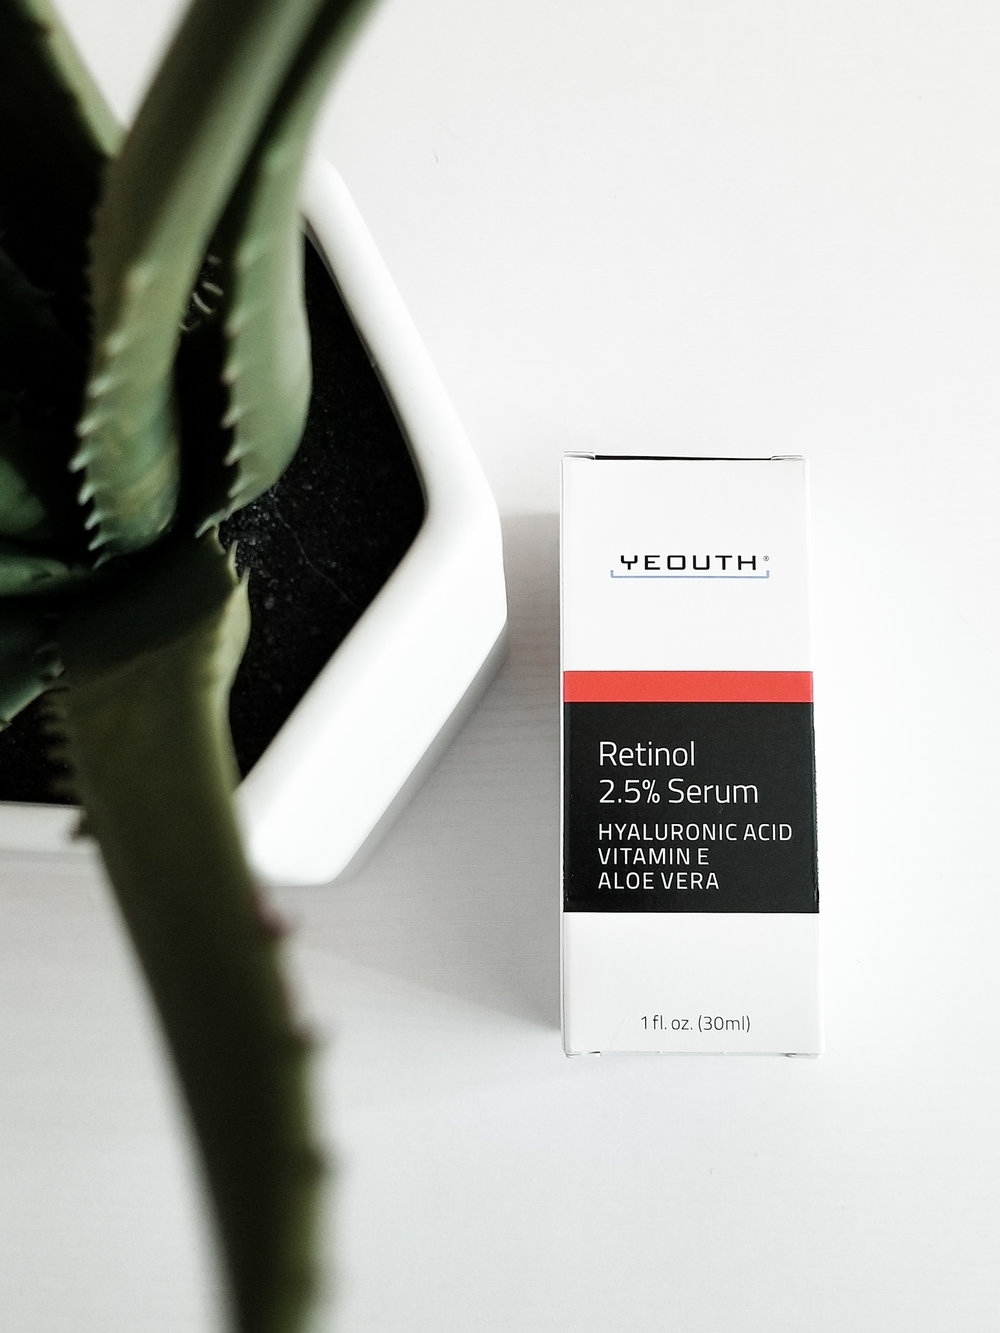 Yeouth Skin Care - It's never too late to start taking care of your skin. Ladies let's face it. Skincare products can get PRICEY. So when I found this @yeouthskincare Retinol 2.5% formula for under $20... Hollllaaaah!